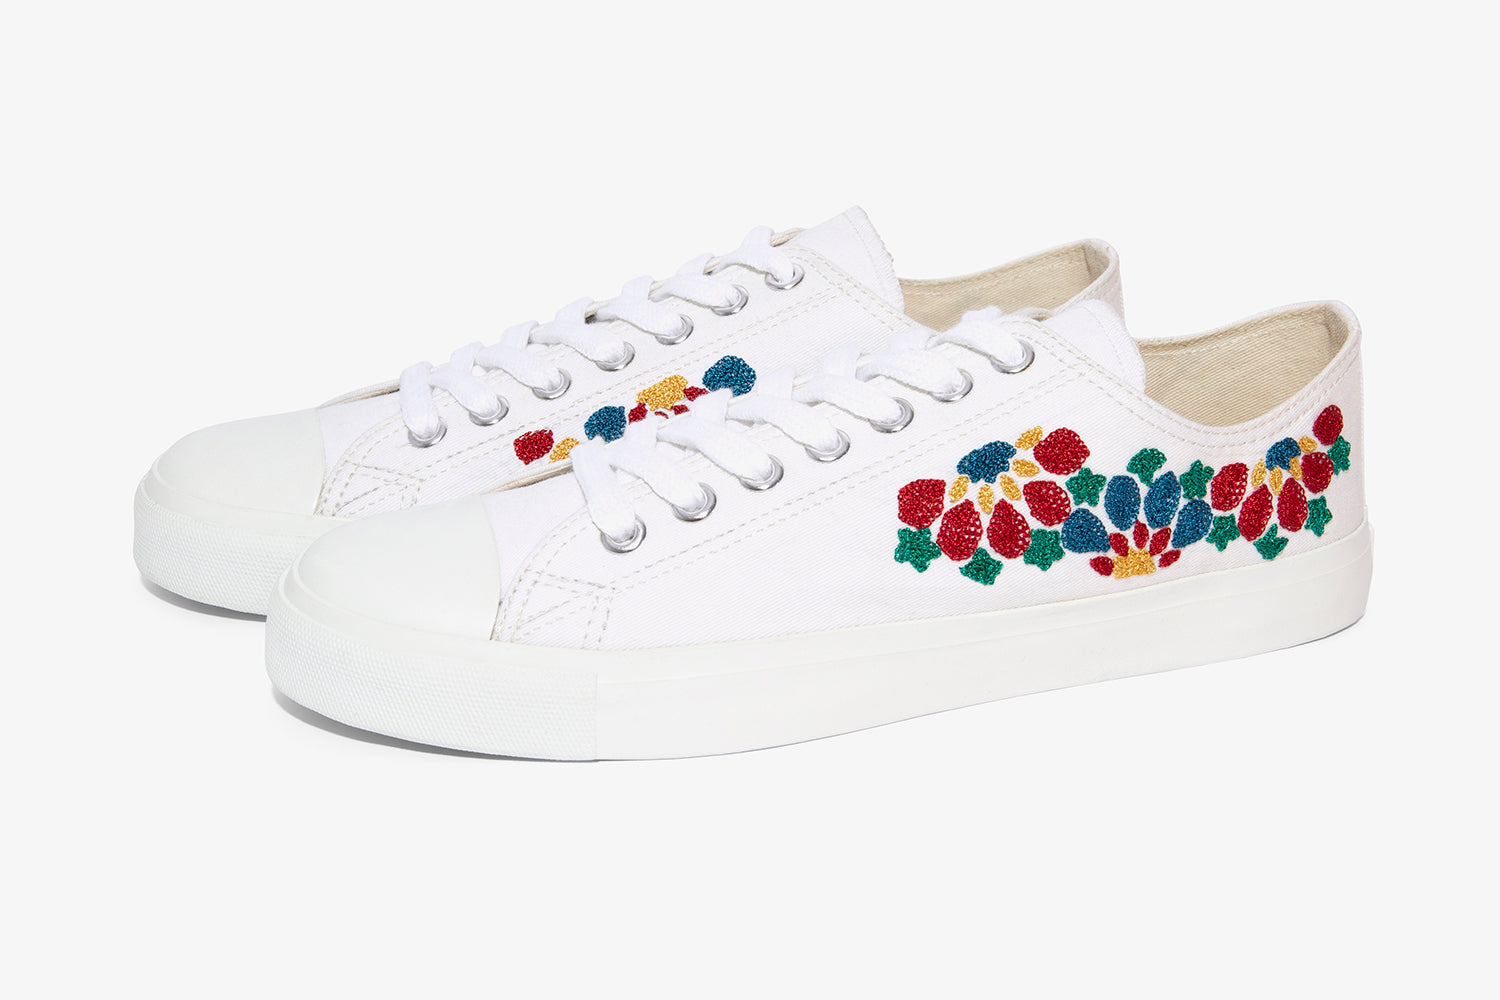 white sneaker for casual wear with canvas upper